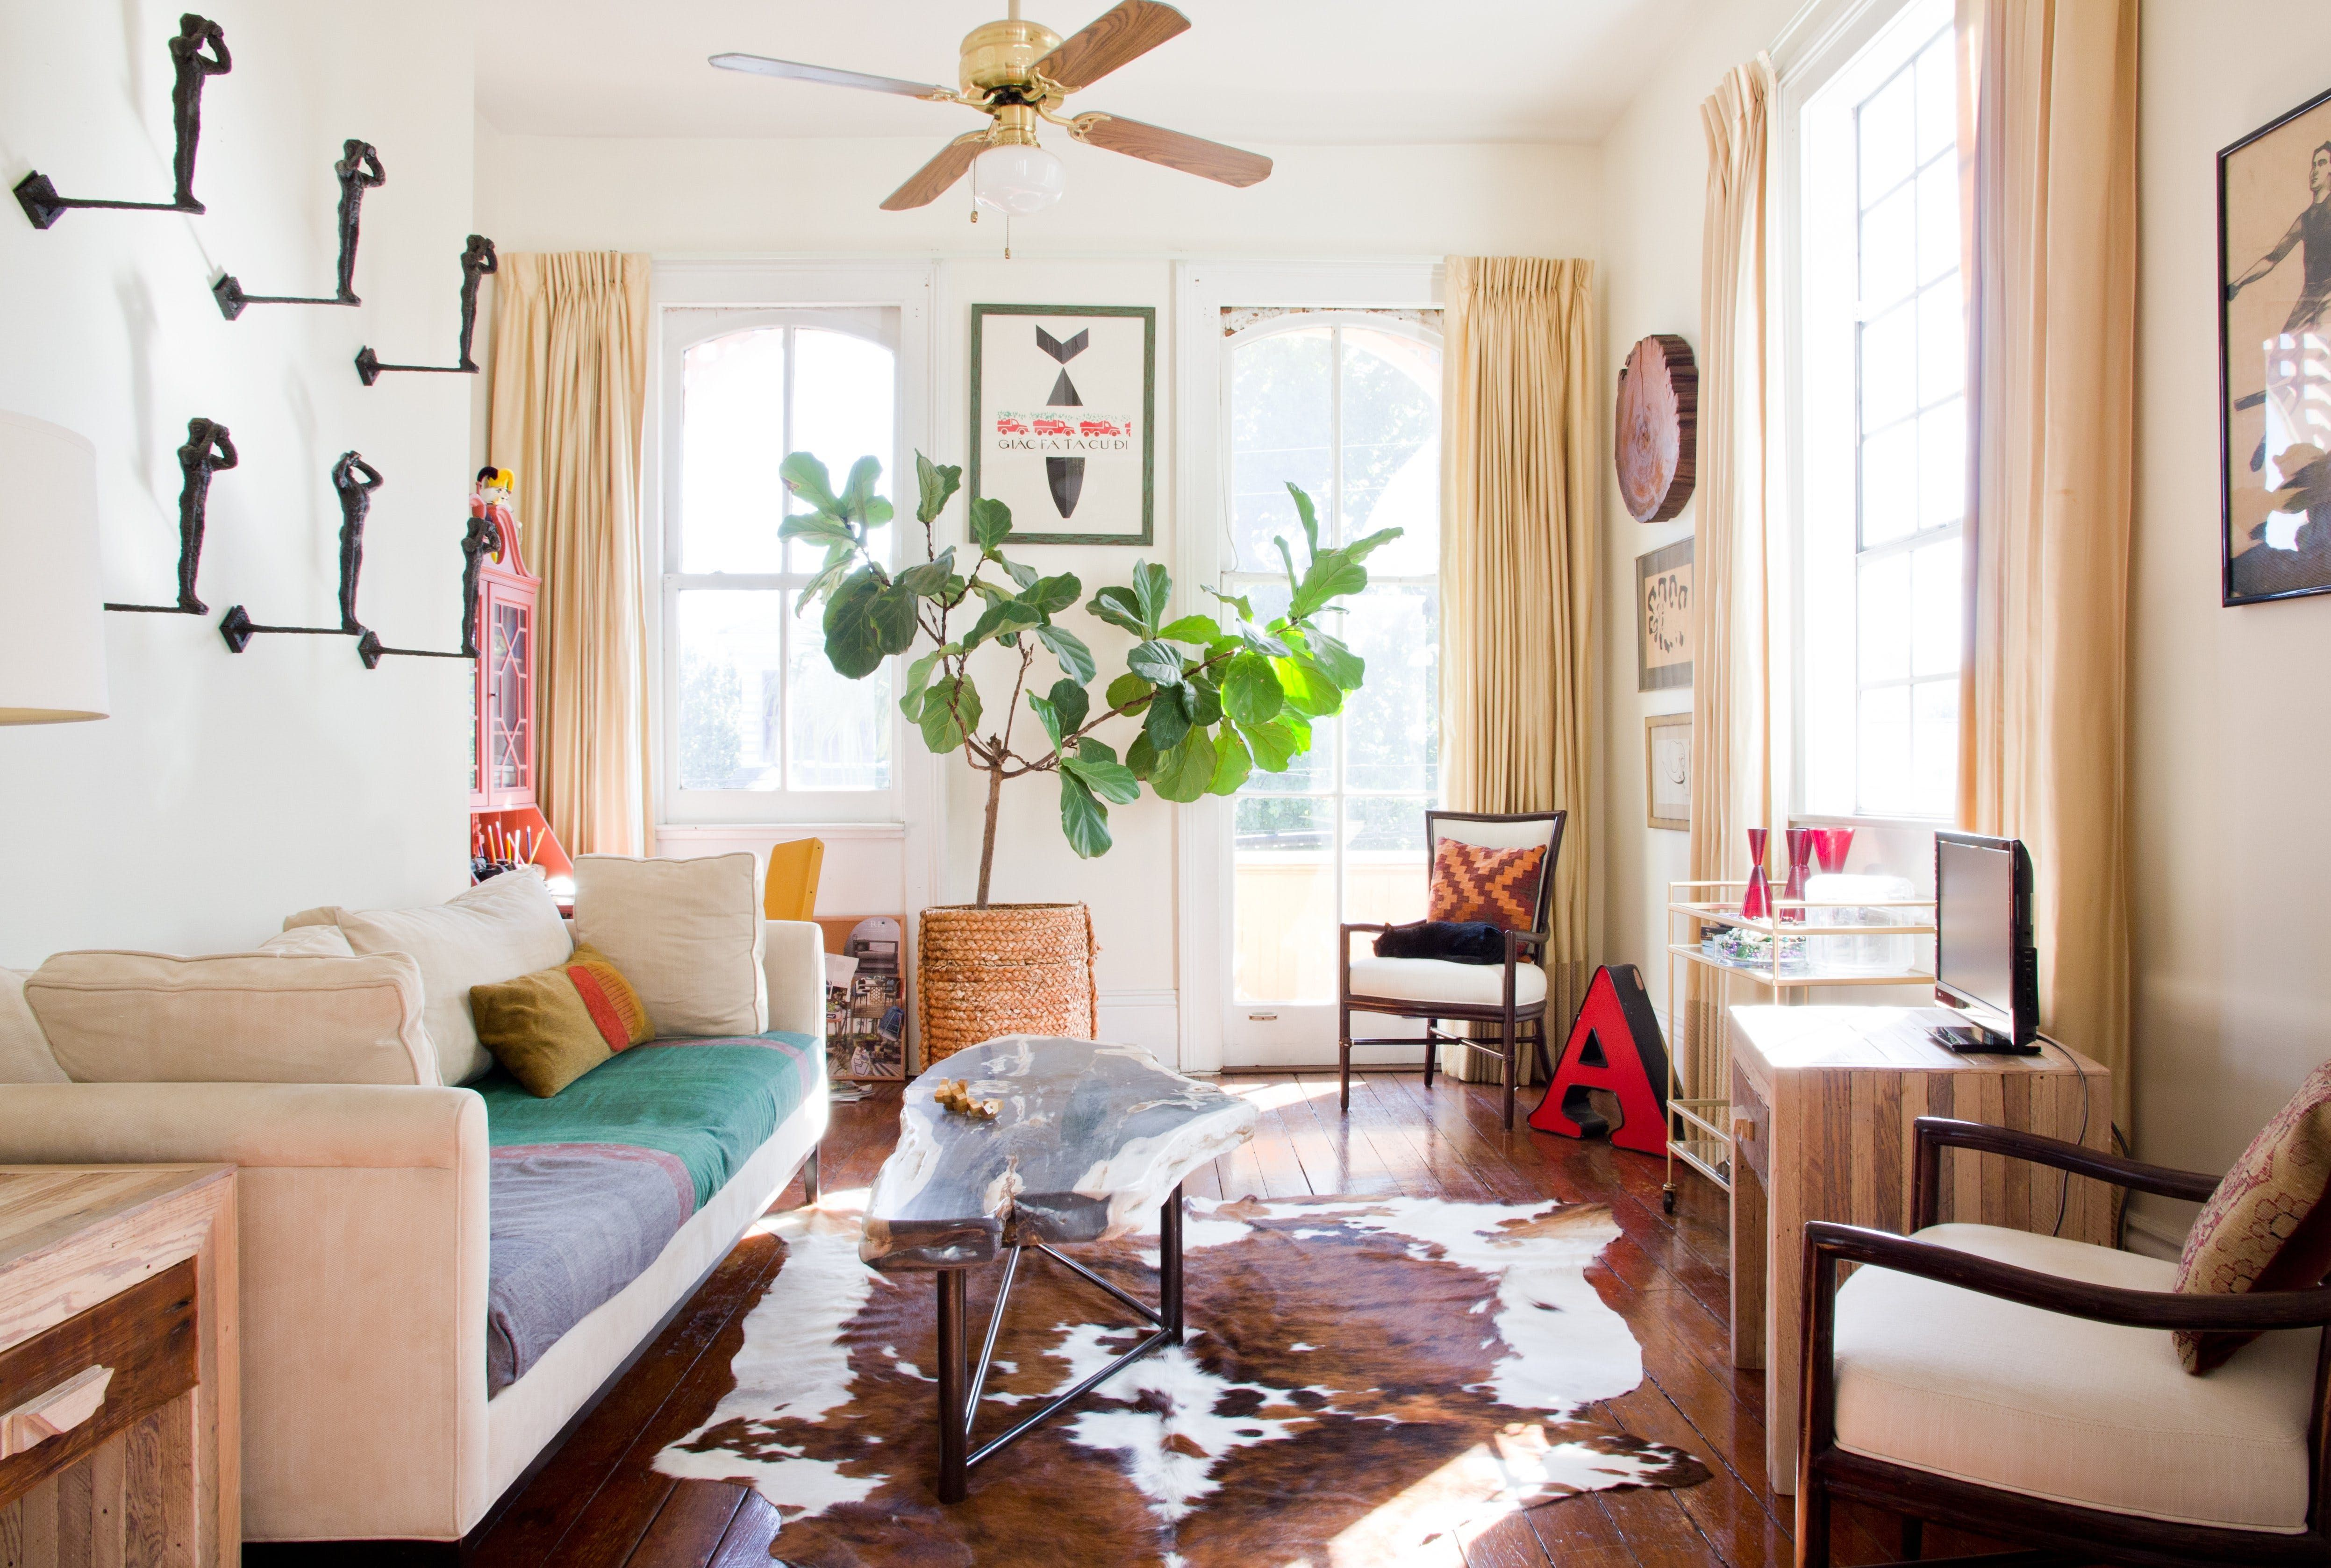 Alex's Layered, Laid-Back Uptown New Orleans Rental — House Tour